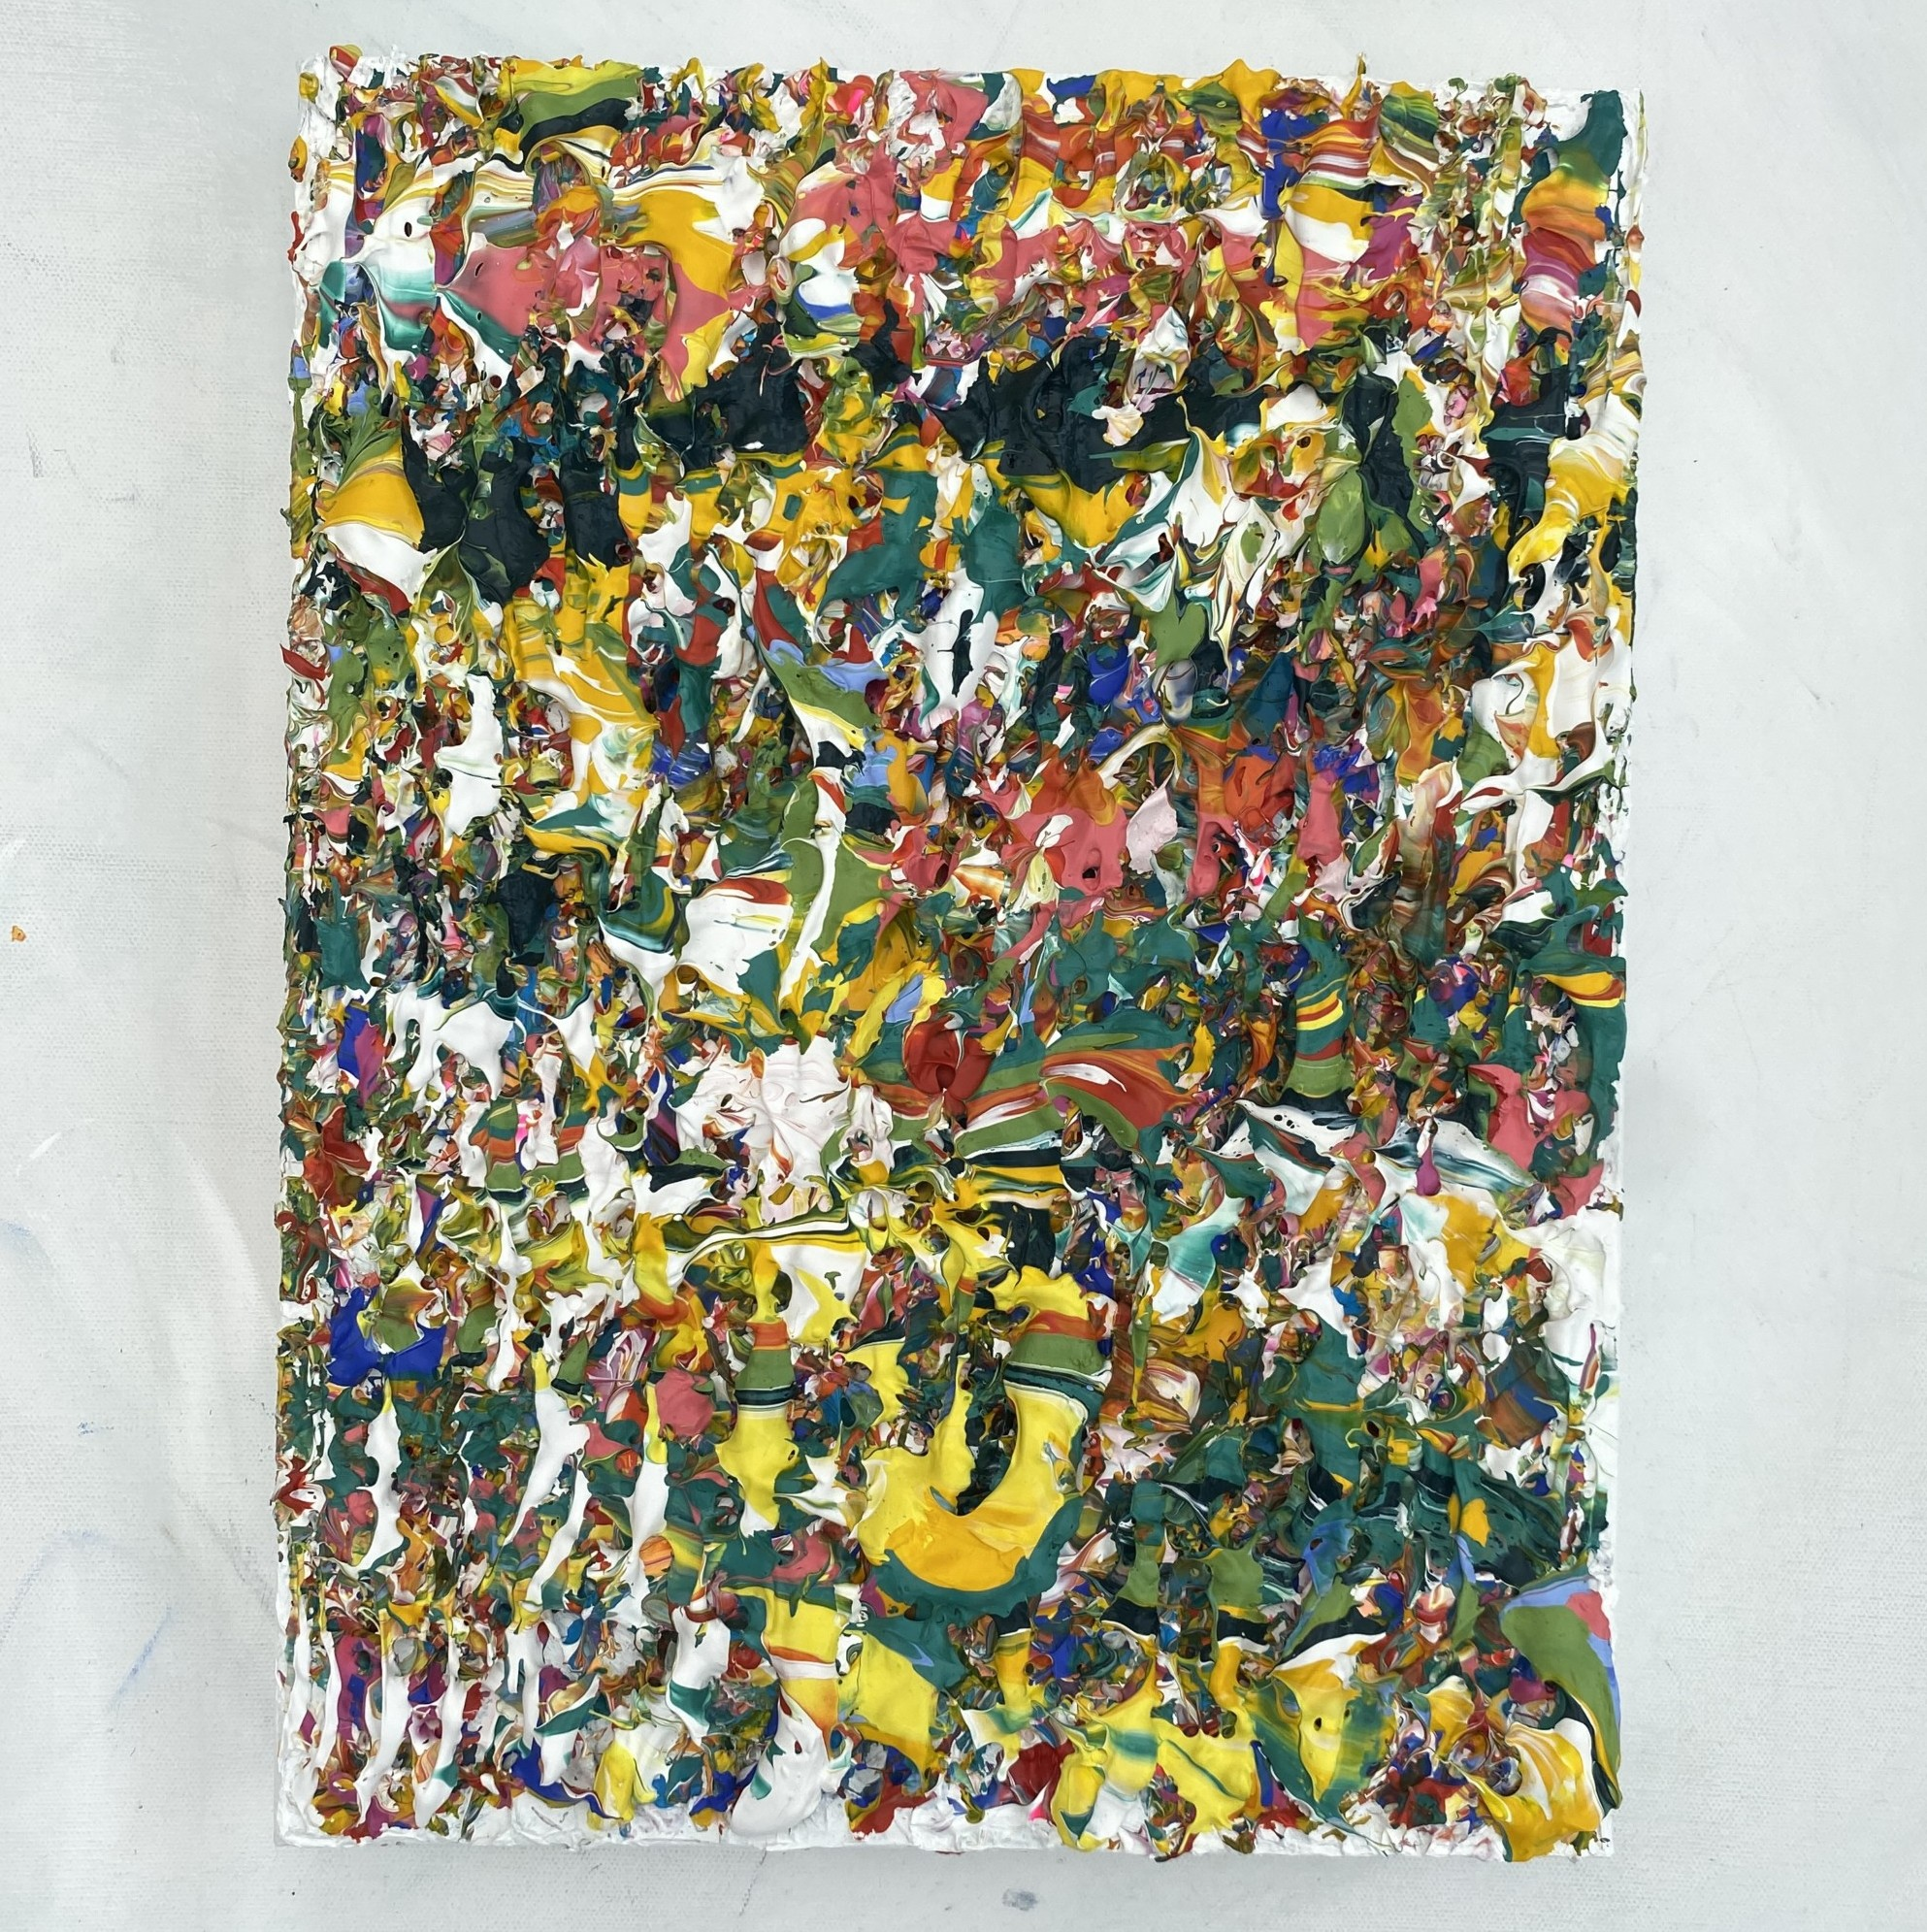 Full gallery view of Superabundance an plant life inspired colourful abstract original impasto style art by Emily Duchscherer Kirk.